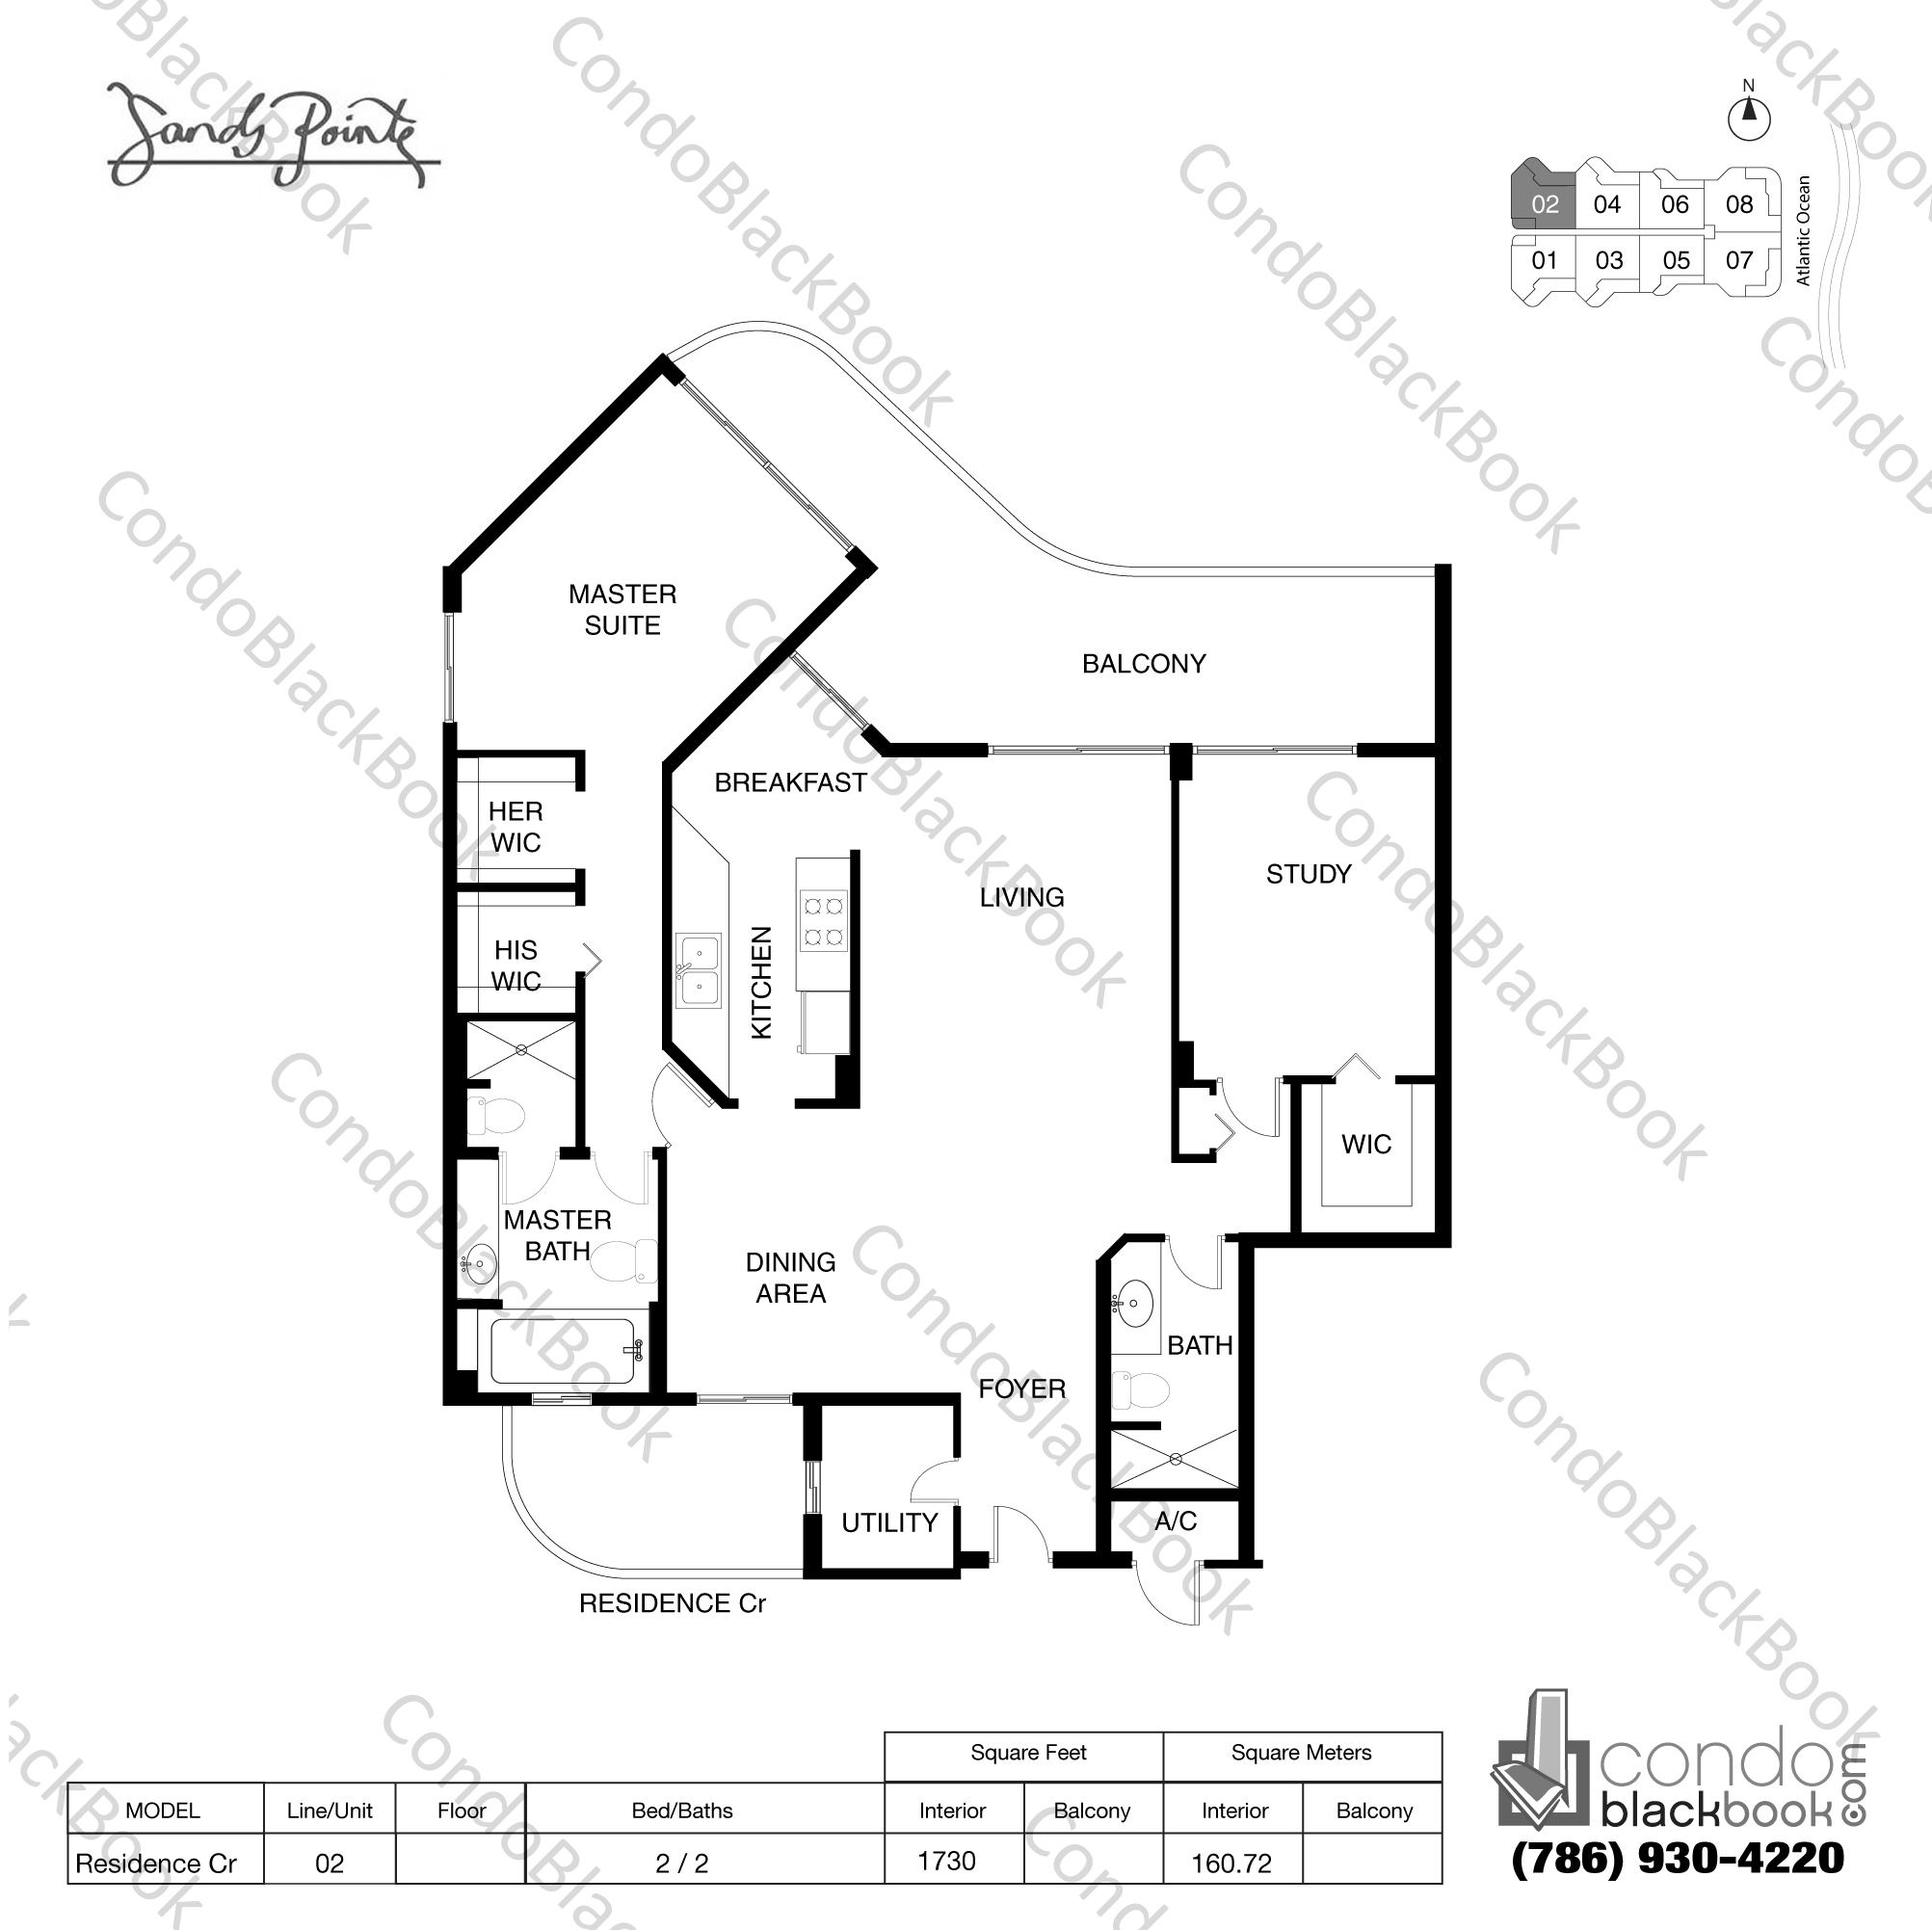 Floor plan for Sands Pointe Sunny Isles Beach, model Residence Cr, line 02, 2 / 2 bedrooms, 1730 sq ft